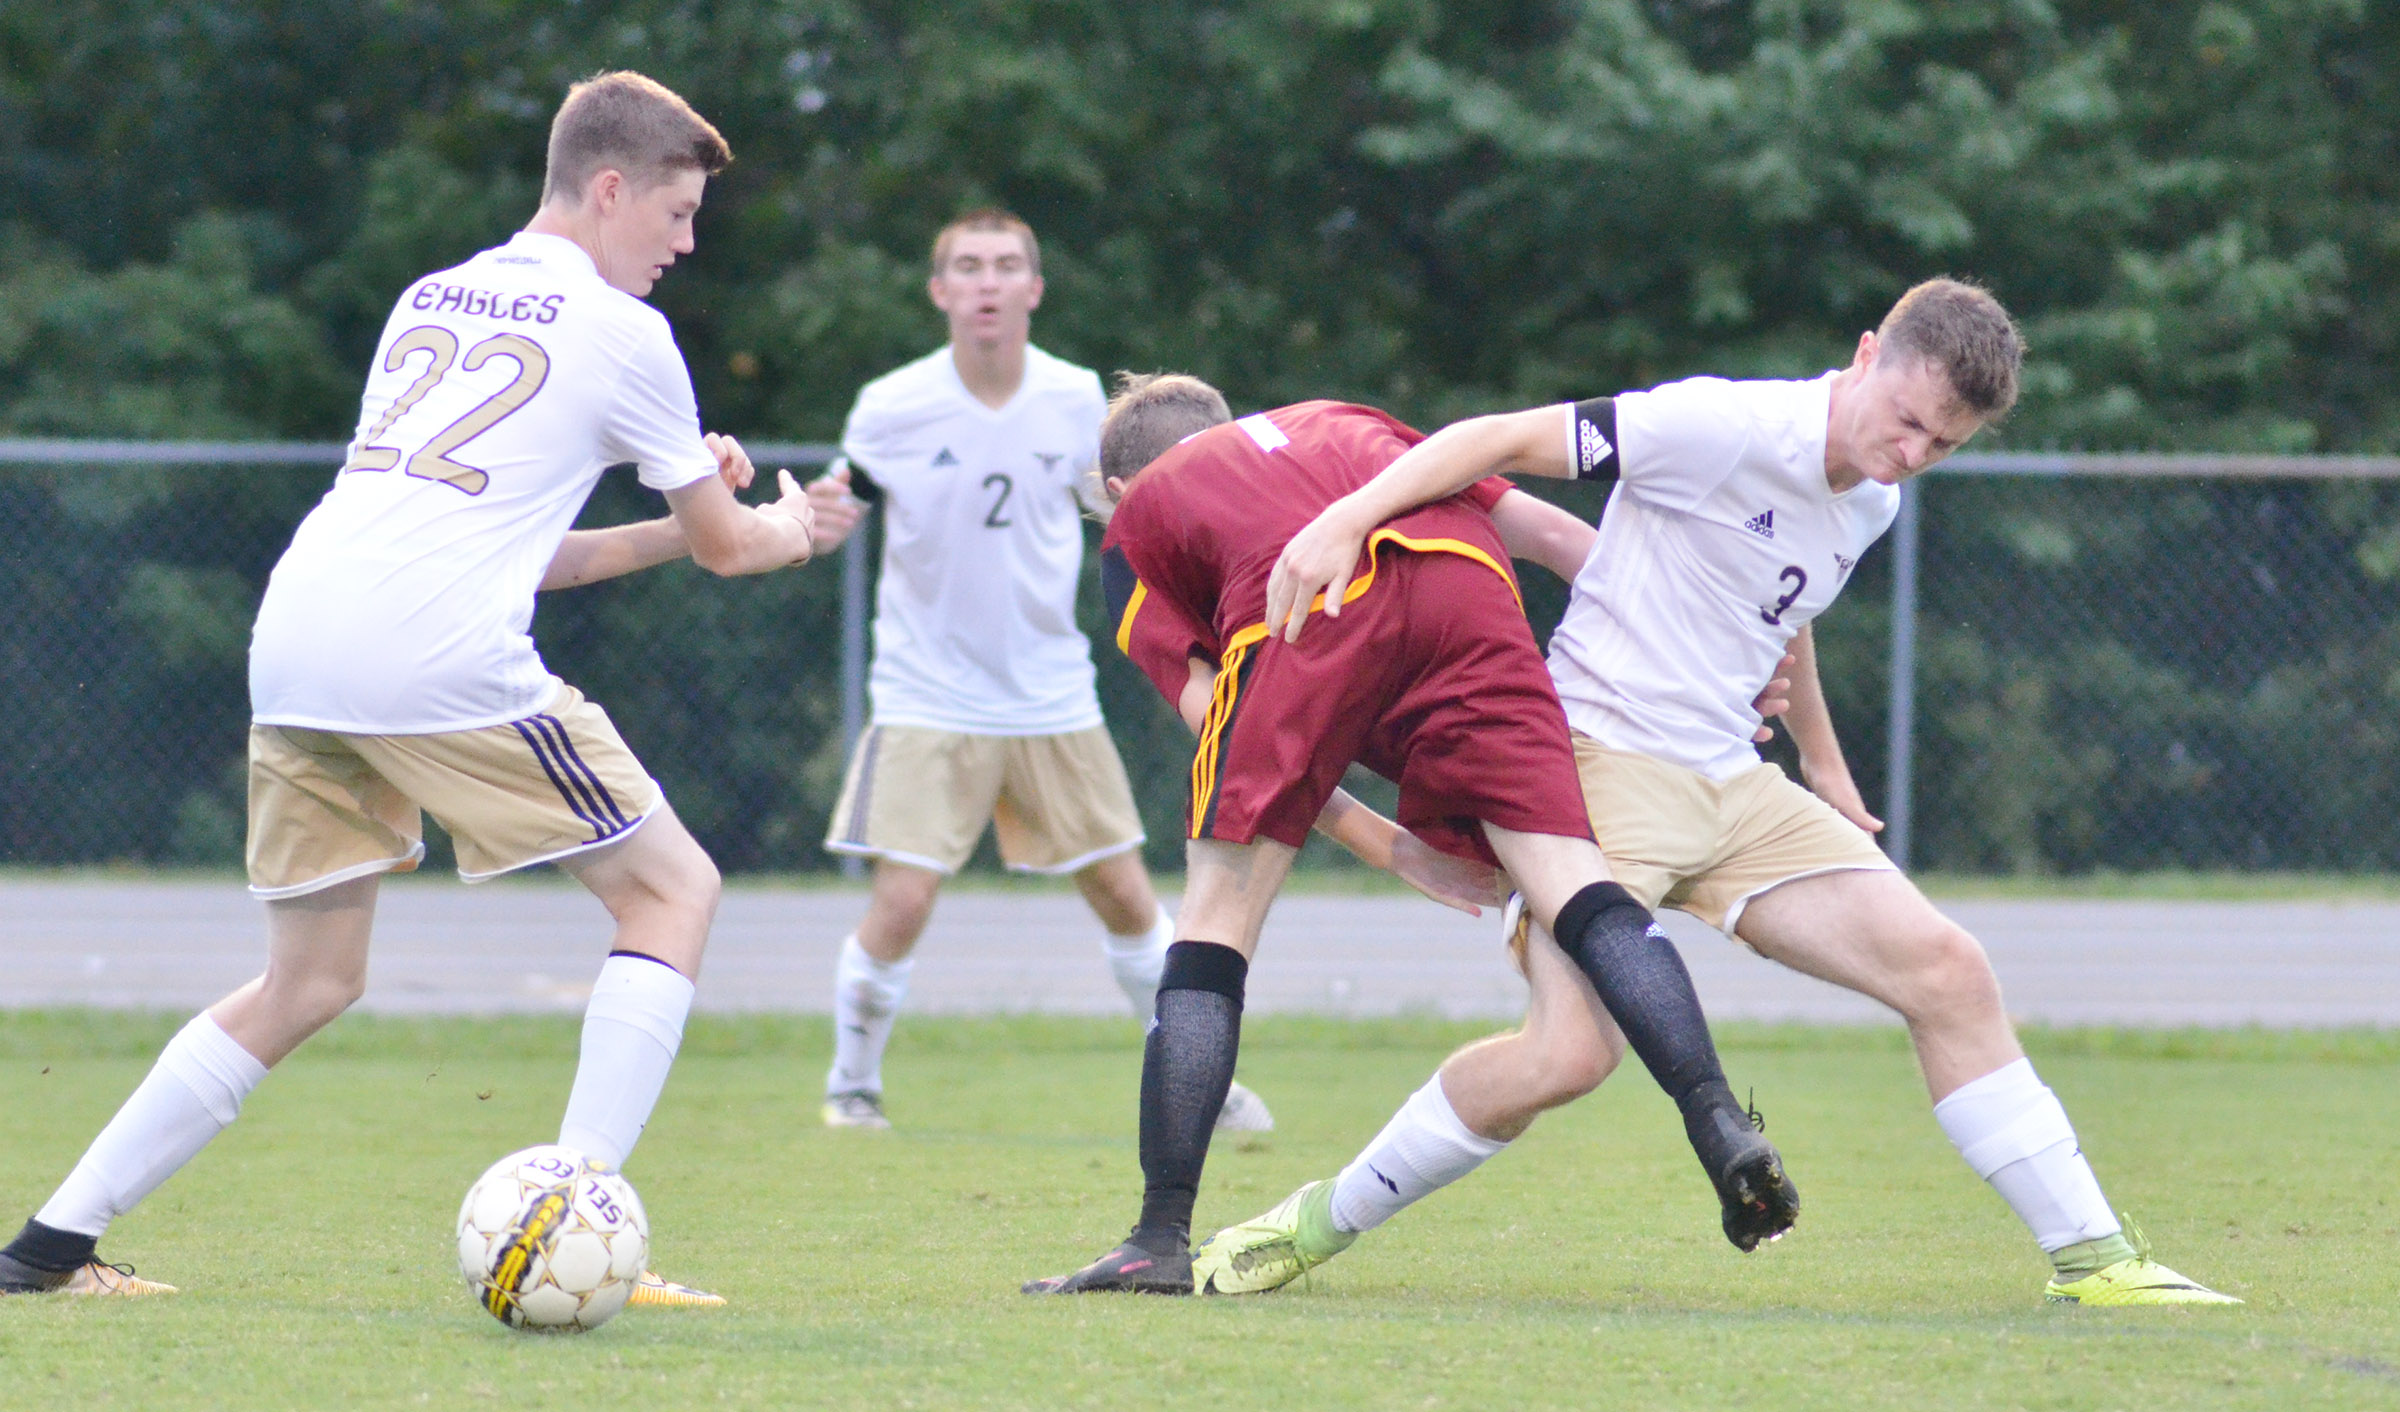 CHS senior Bryce Richardson battles a Garrard County defender as freshman Tristin Faulkner gets the ball.